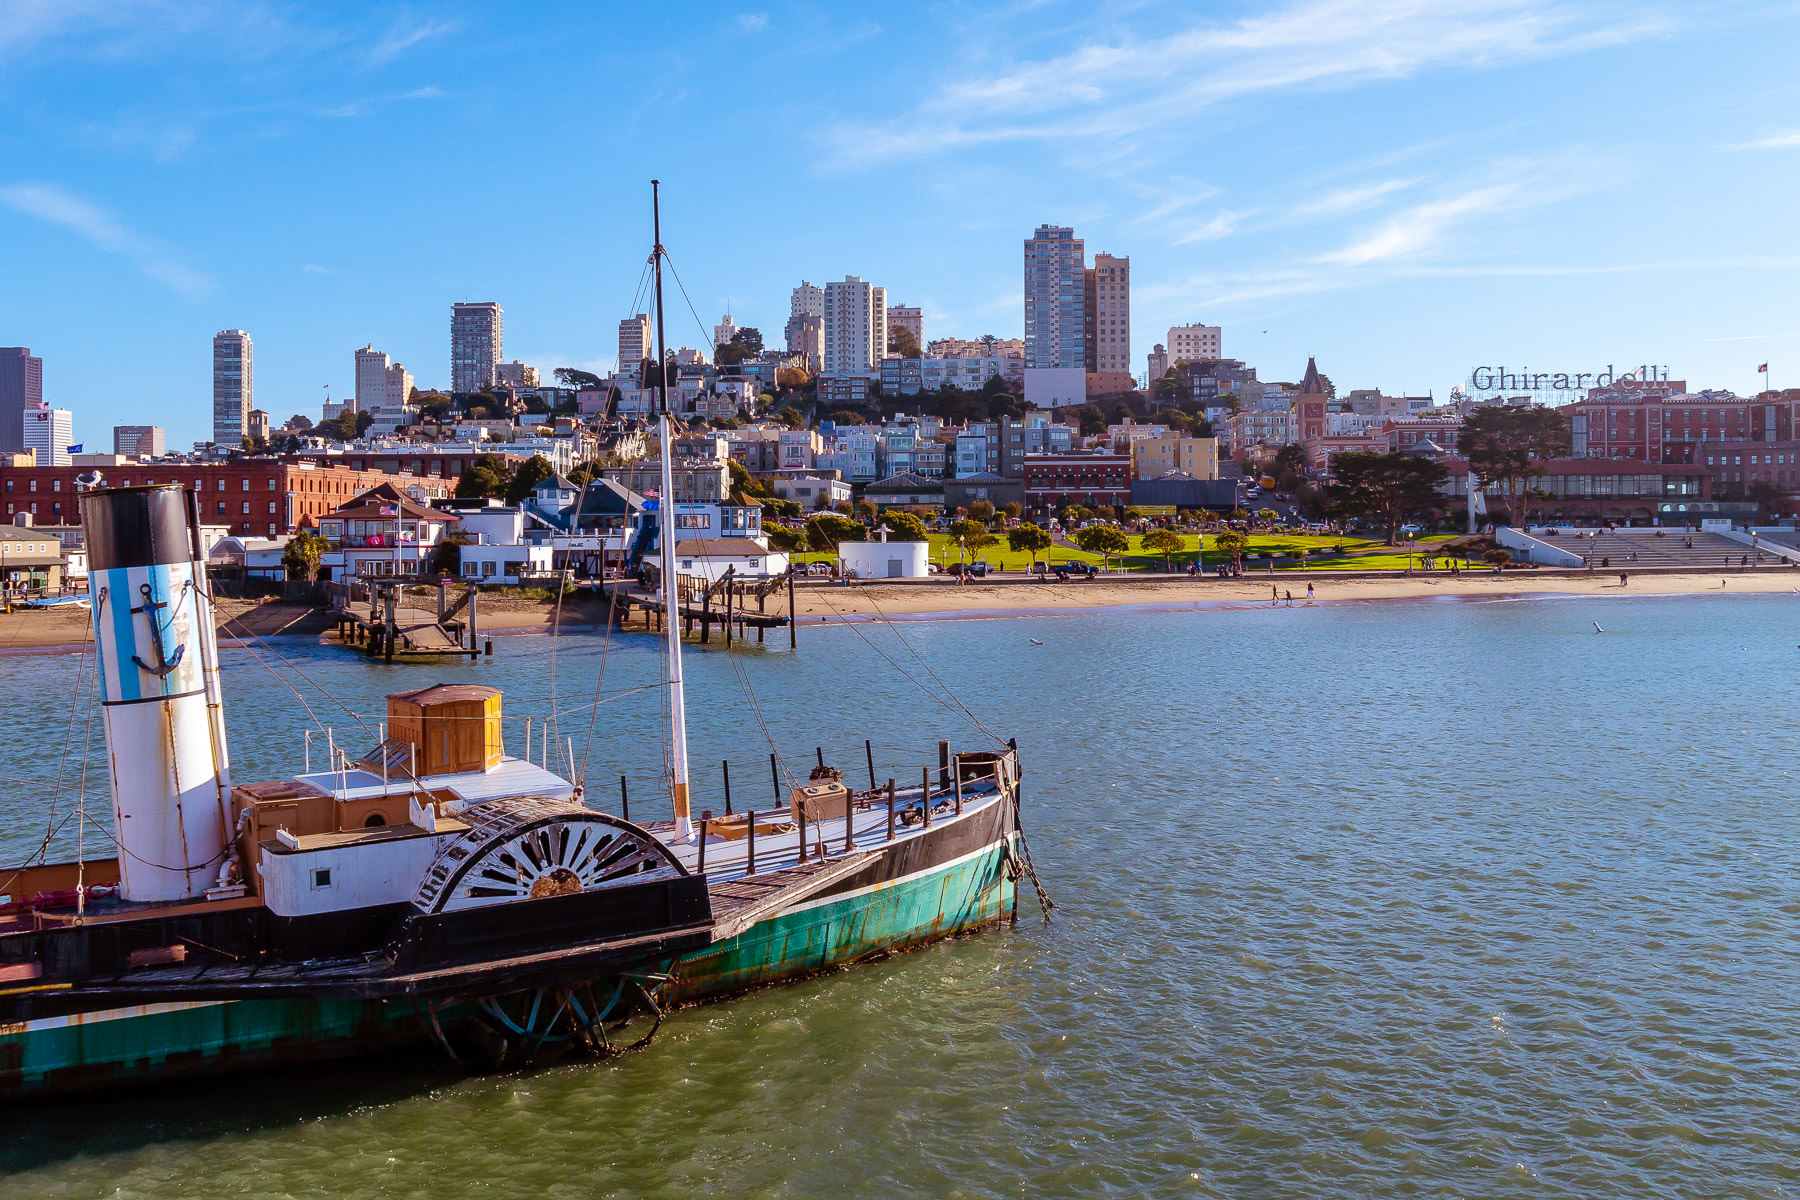 San Francisco's Russian Hill rises over the 1914 paddlewheel tugboat Eppleton Hall at the San Francisco Maritime National Historical Park.